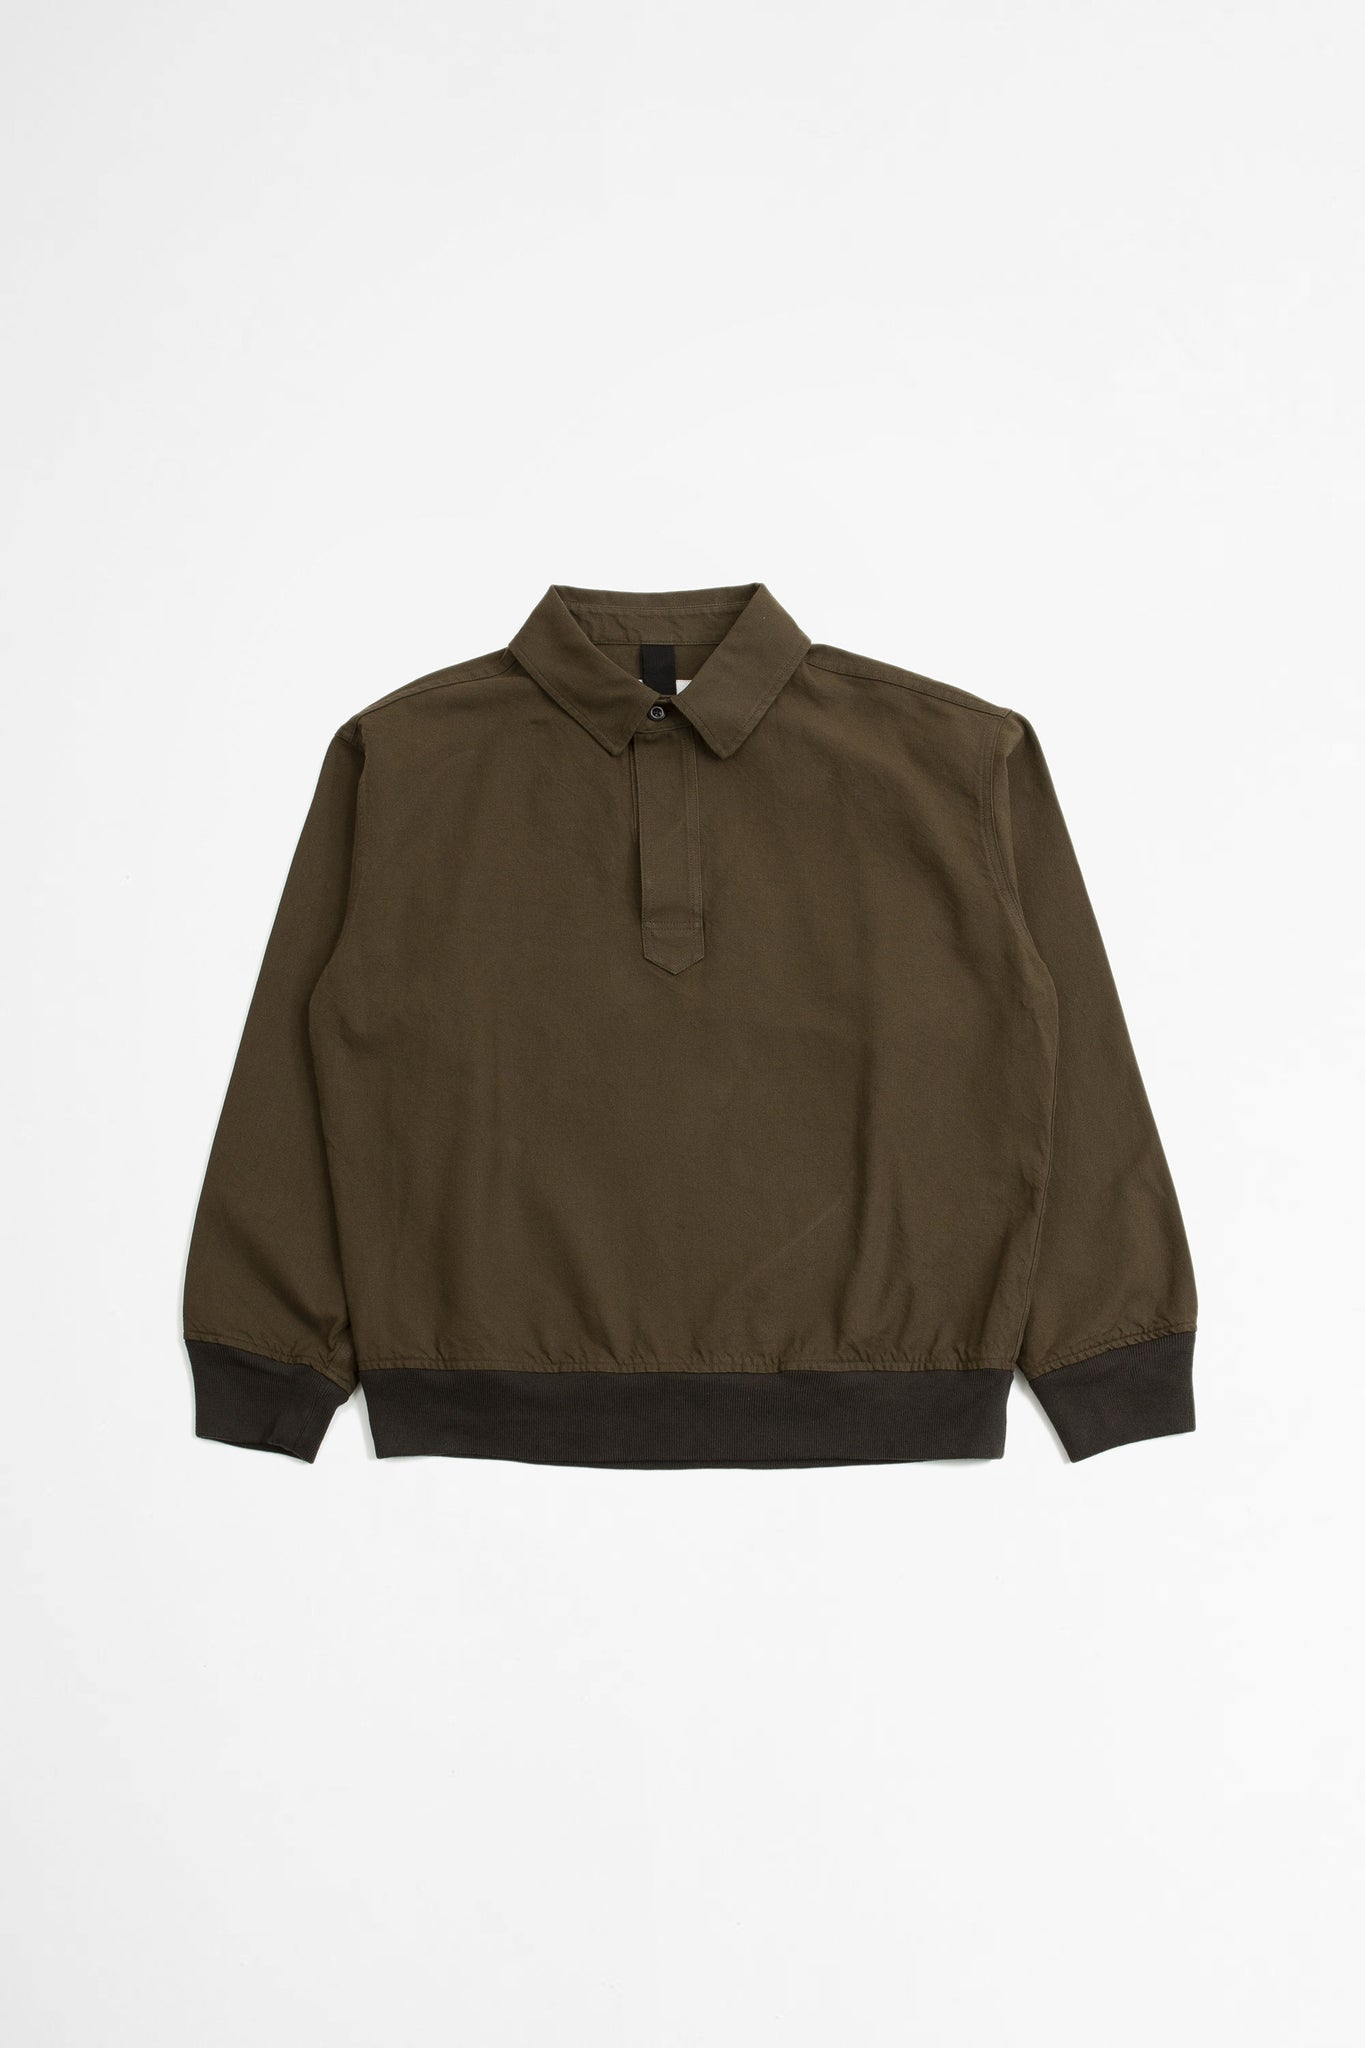 Pull on polo workwear cotton twill bark